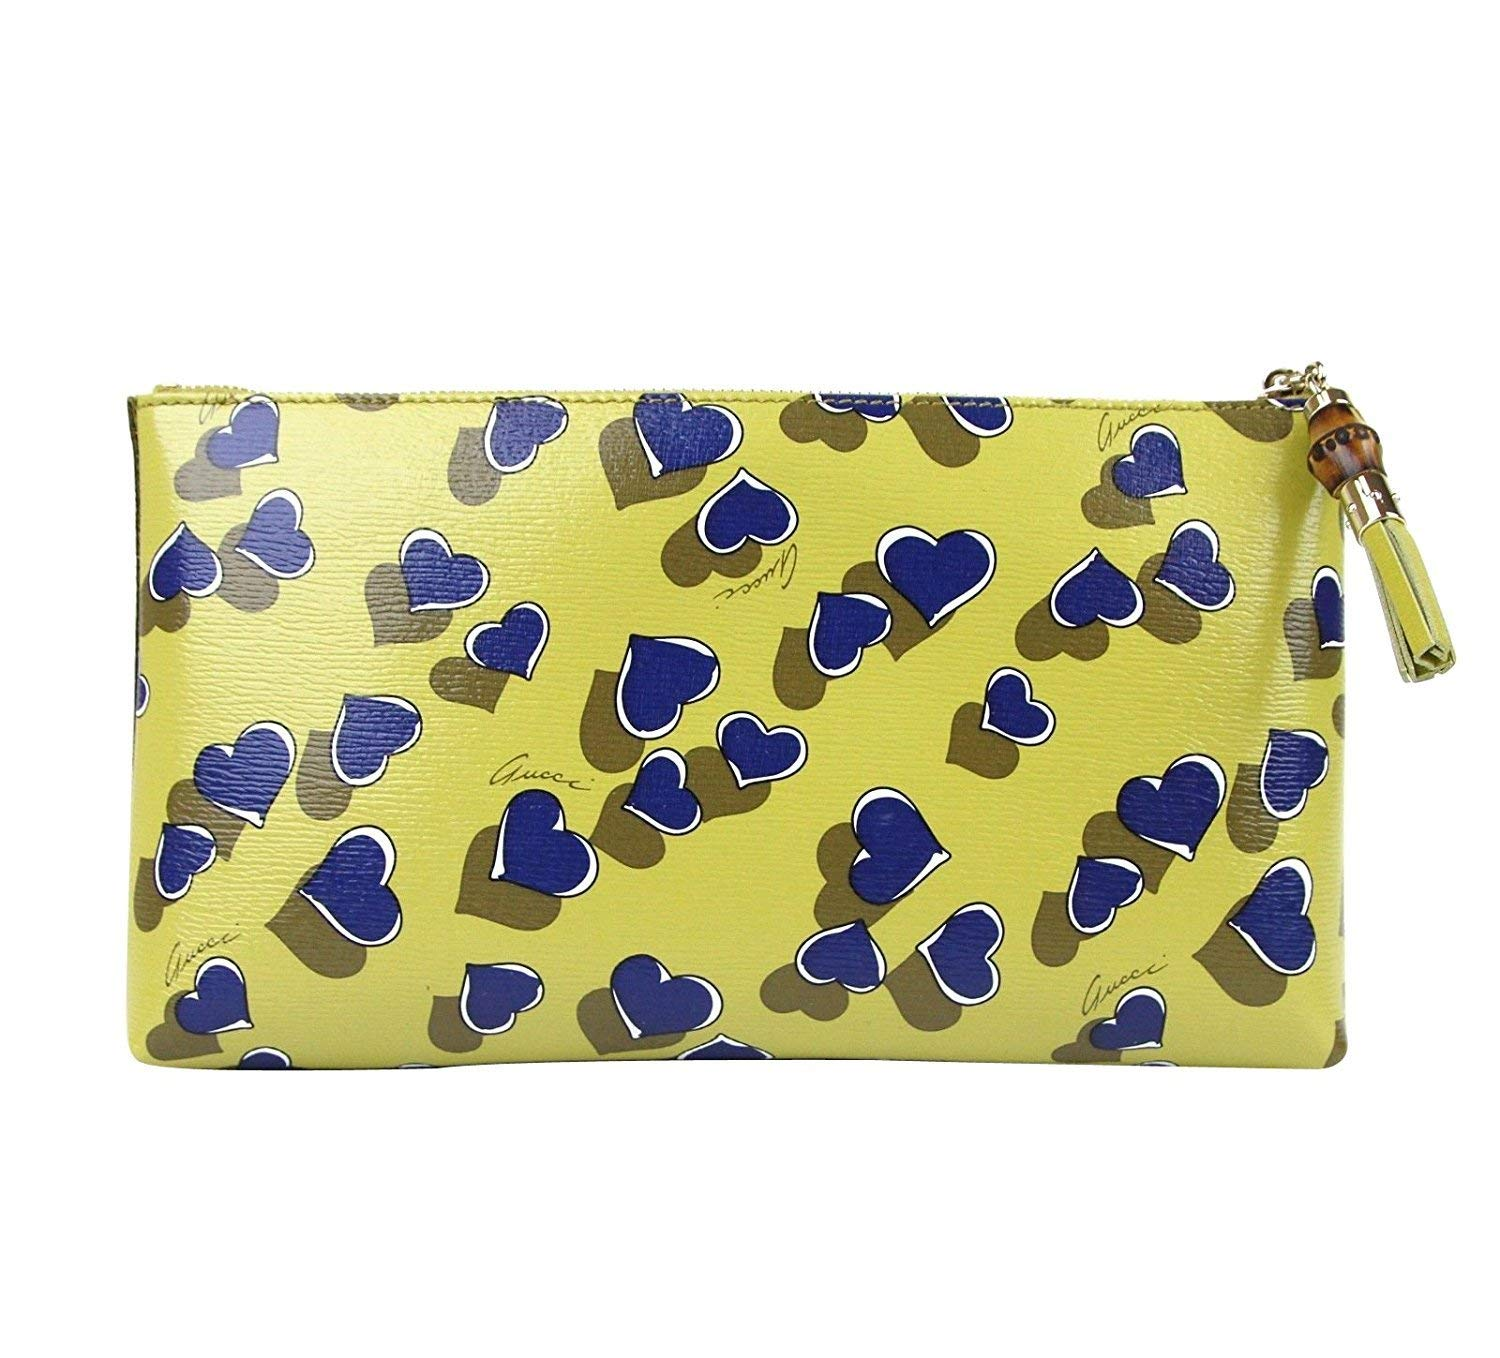 4e86b160d535 Gucci Ladies Yellow Leather Large Heartbeat Pouch Clutch Bag 338815 7309